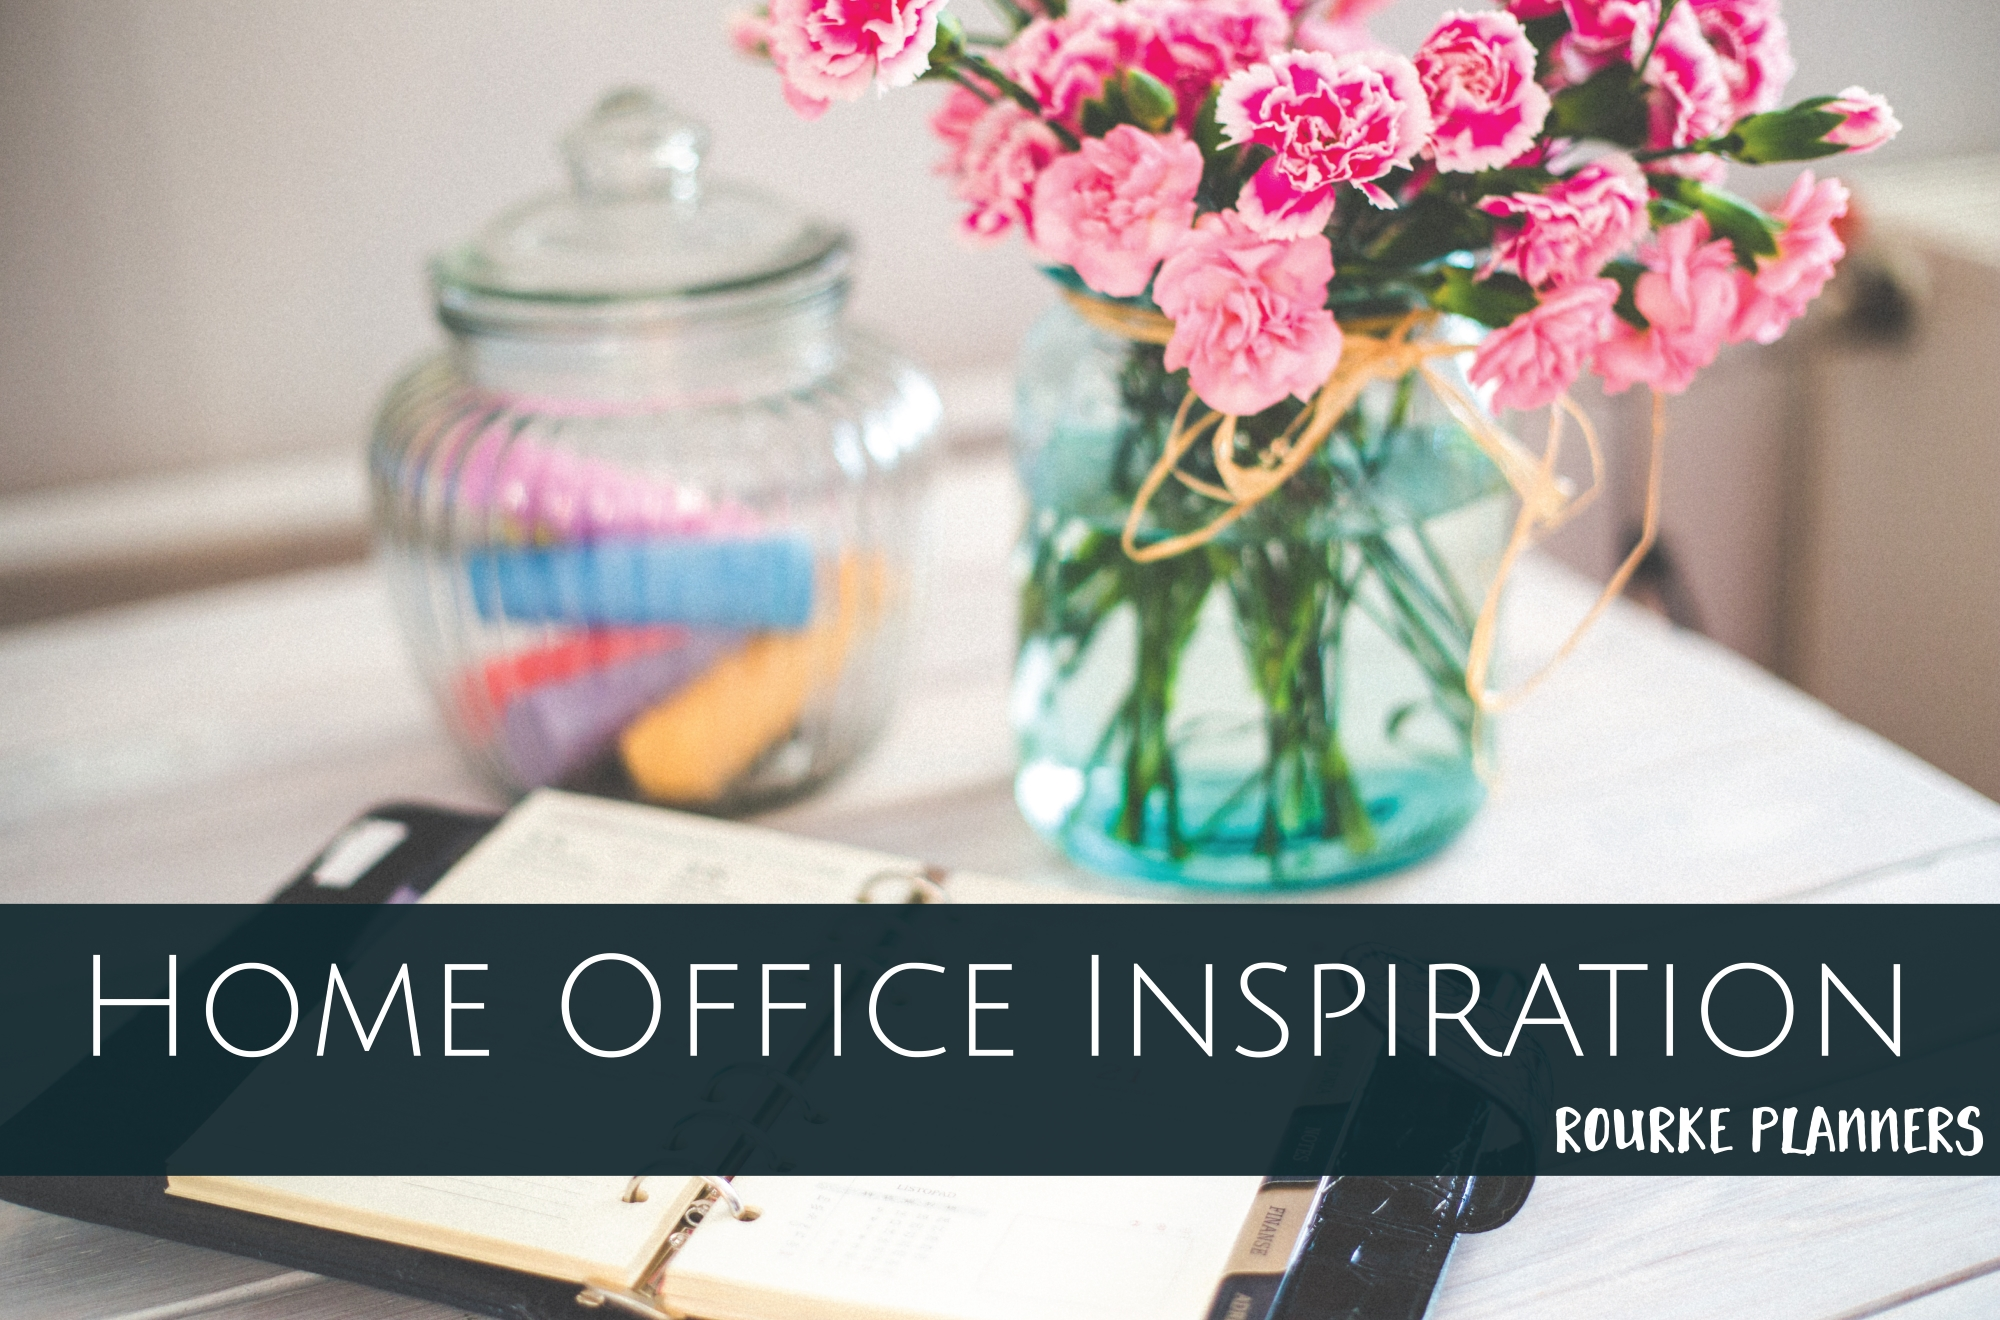 Home Office Inspiration | Rourke Planners